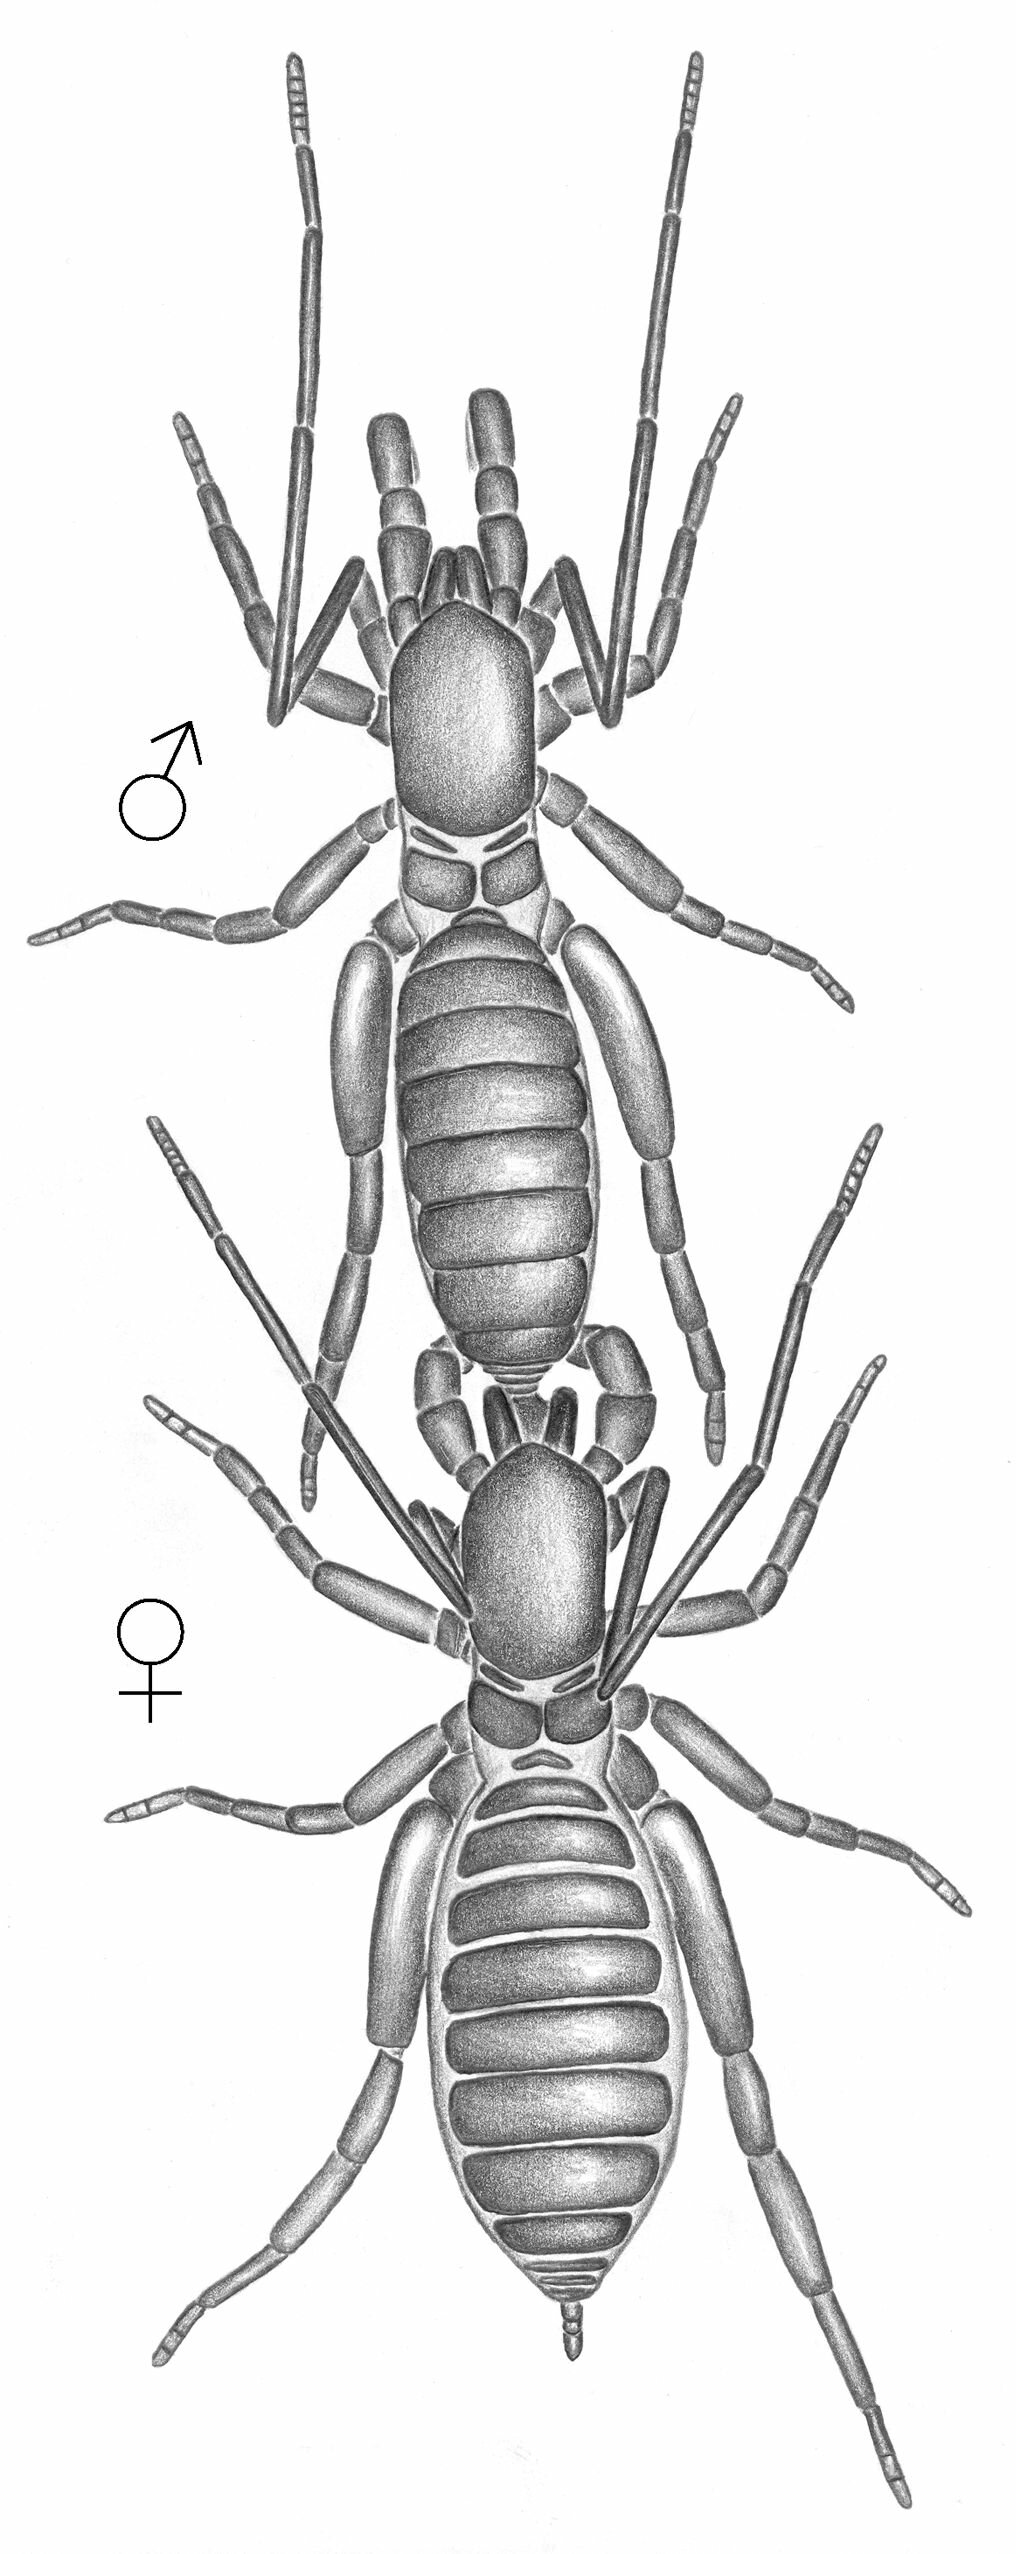 Mating march in Surazomus whip scorpion. Male dragging locked female by the flagellum (note female chelicerae in vertical position). Credit: Ruiz et al, 2019  Read more at: https://phys.org/news/2019-03-short-tailed-scorpion-species-amazon.html#jCp